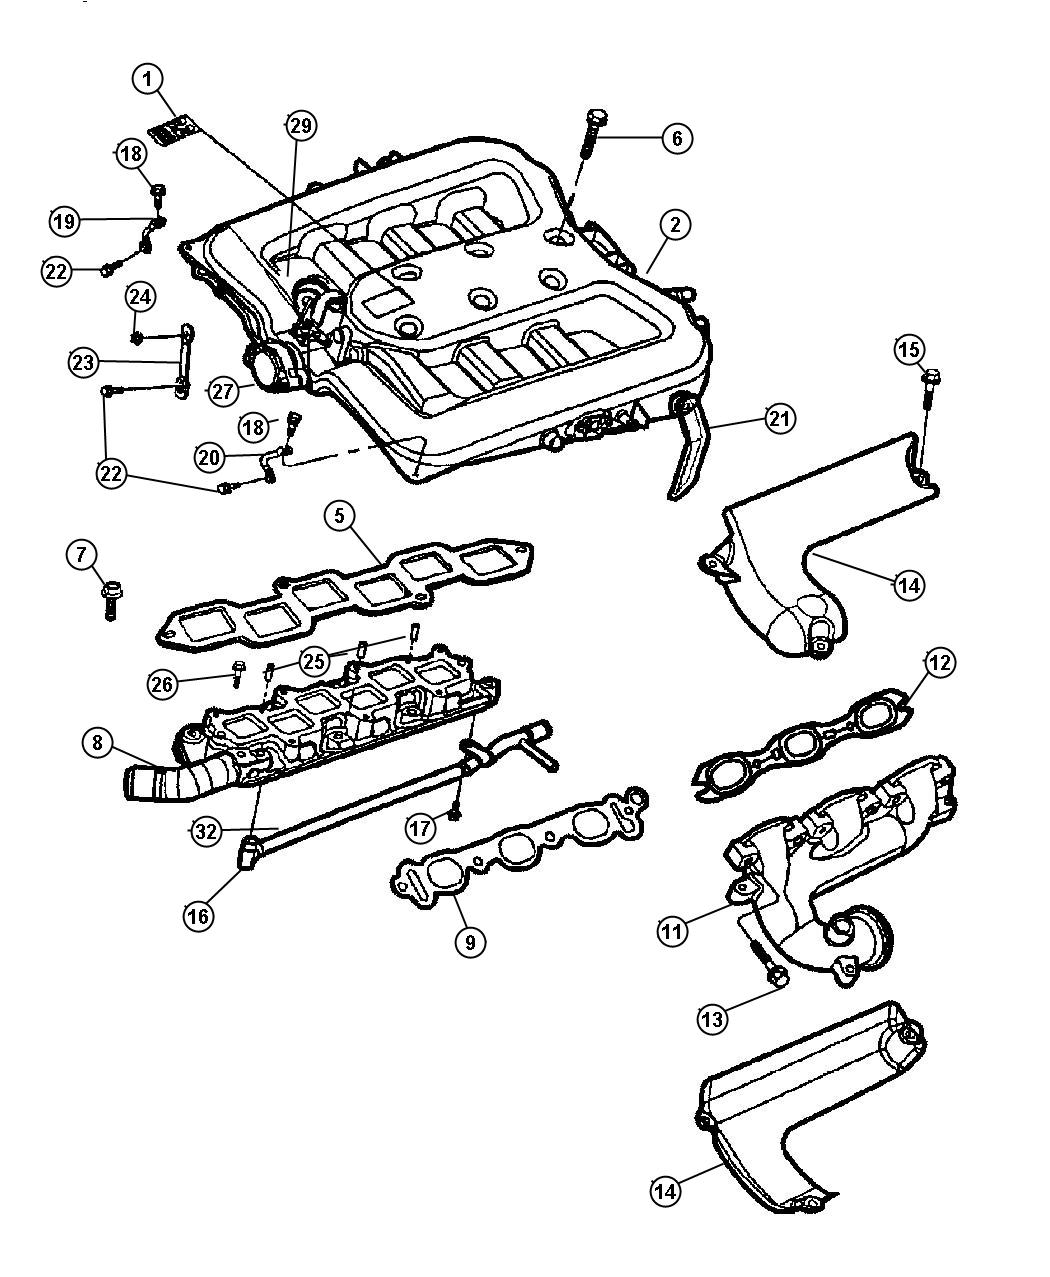 chrysler 300 actuator  manifold tuning valve  contains an actuator and o ring